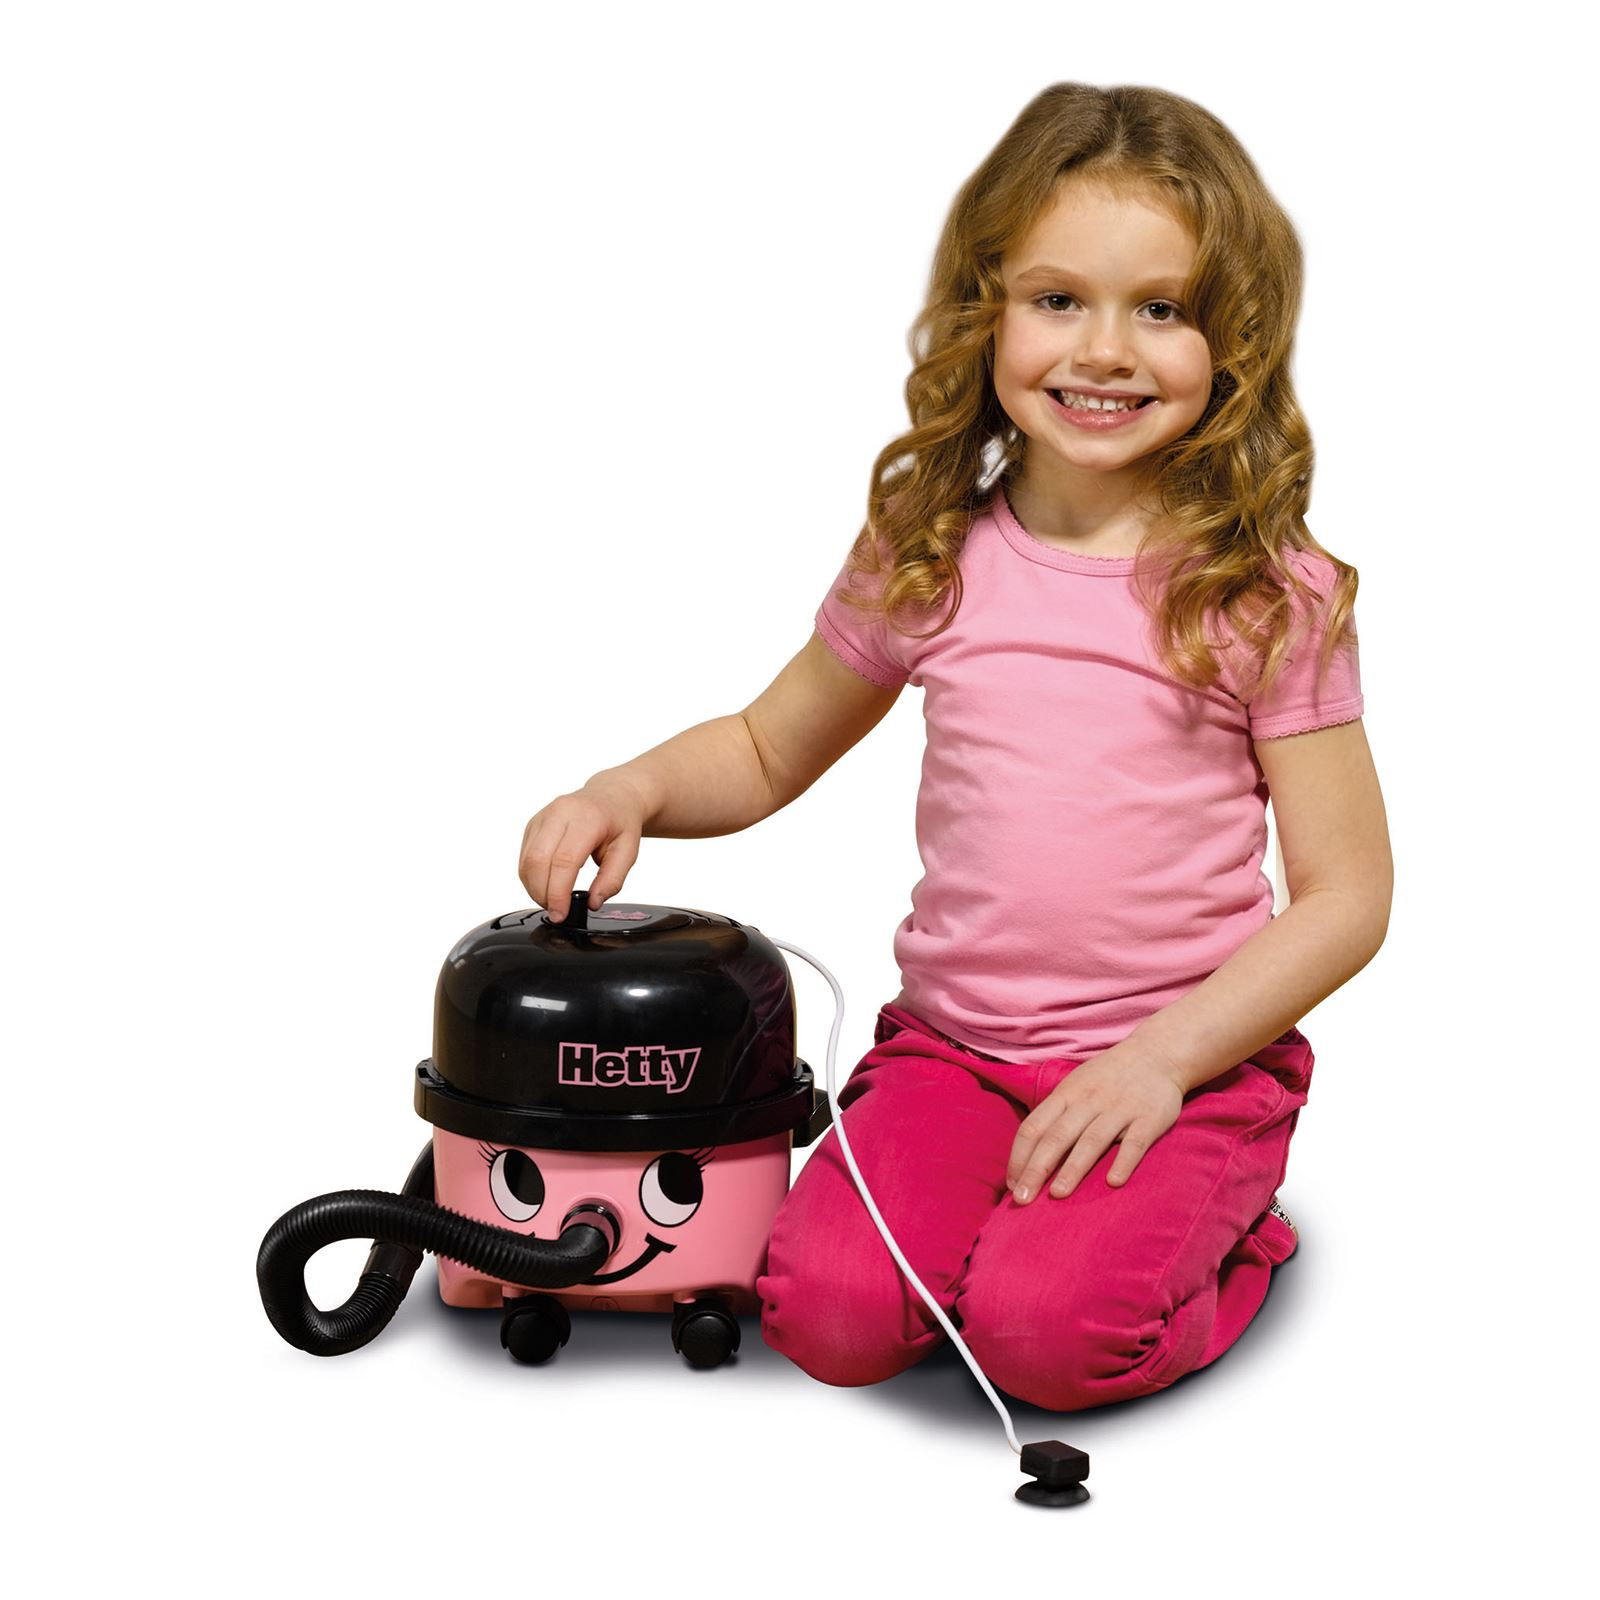 Indexbild 25 - KIDS VACUUM CLEANERS - LITTLE HENRY HETTY DYSON - KIDS CHILDRENS ROLE PLAY